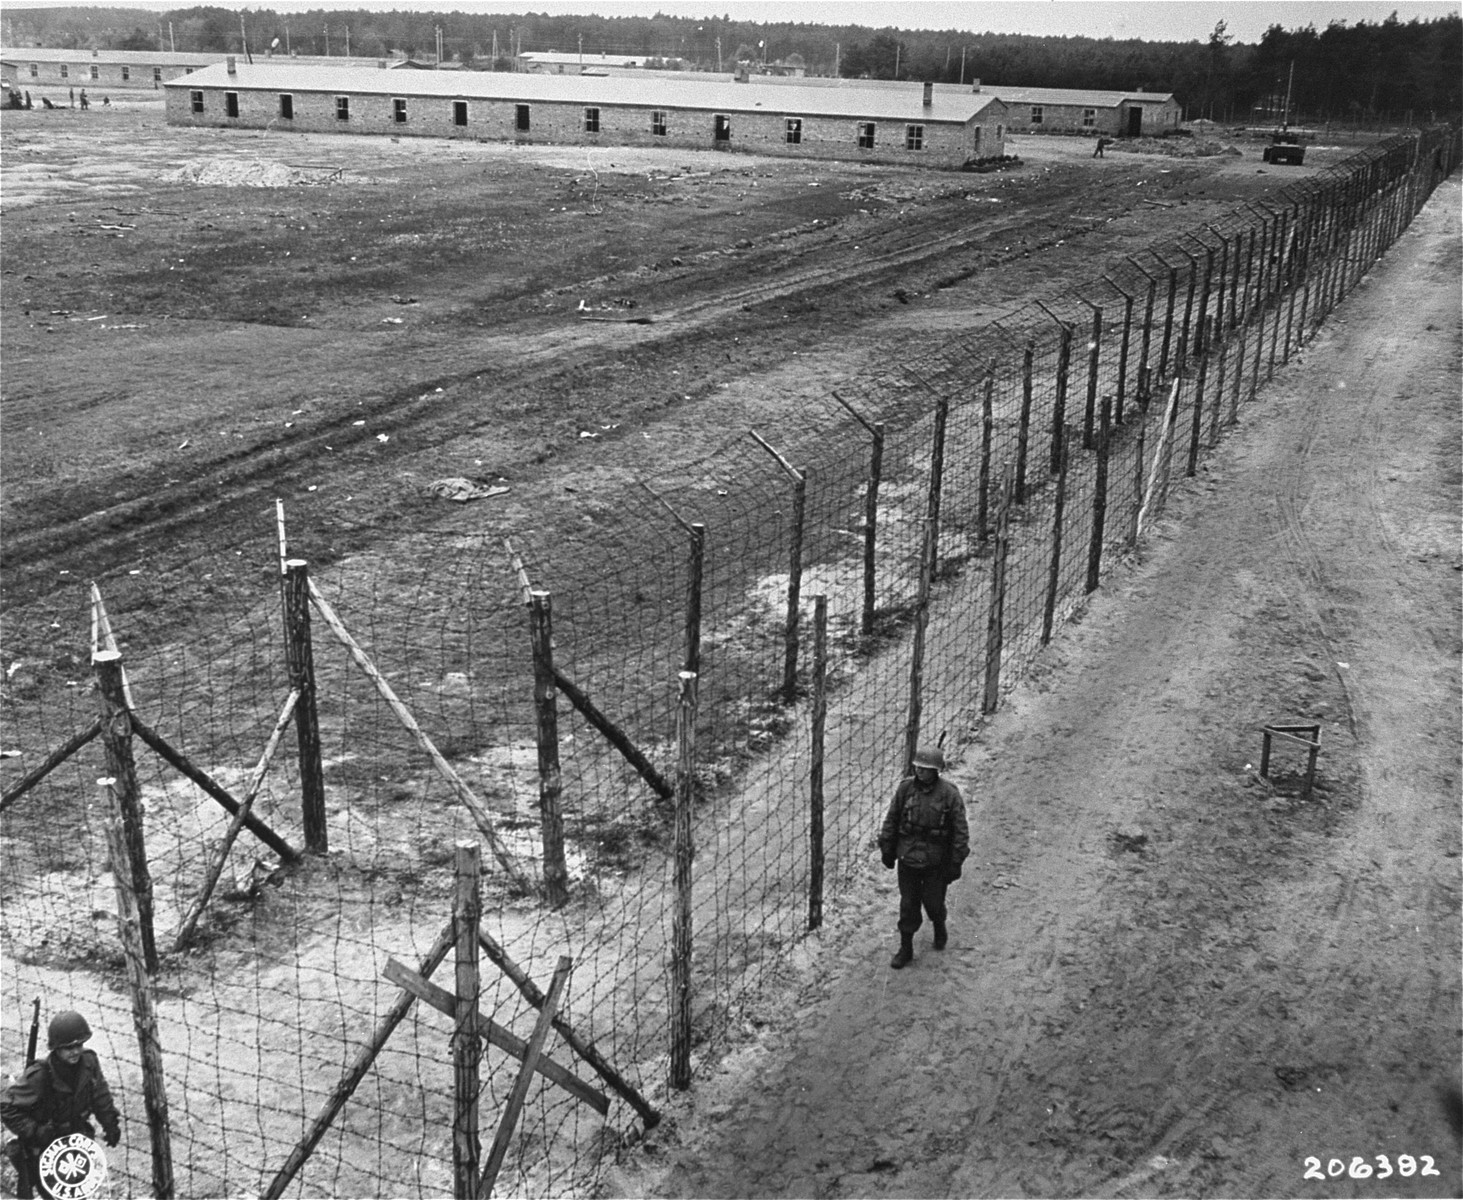 a description of the concentration camps as a big part of the holocaust Life in the camps and ghettos concentration camps, physical and mental torture, death camps, and the final solution 2 description from the testimony of polish patriot and heroic figure jan karski 182 performance objectives.